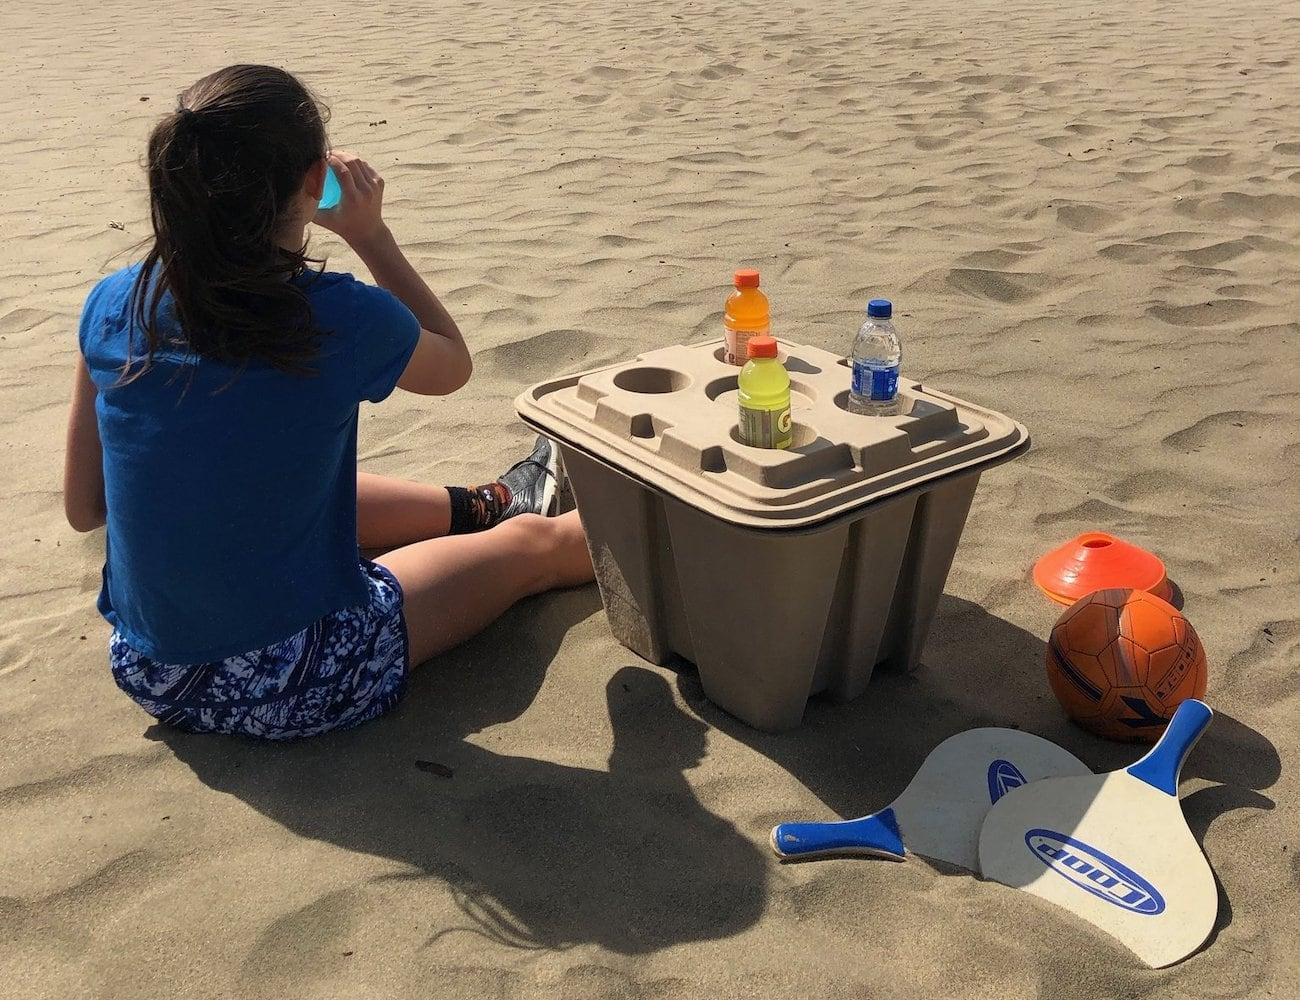 Vericool Ohana Cooler Recyclable and Biodegradable Cooler is a lightweight Styrofoam replacement